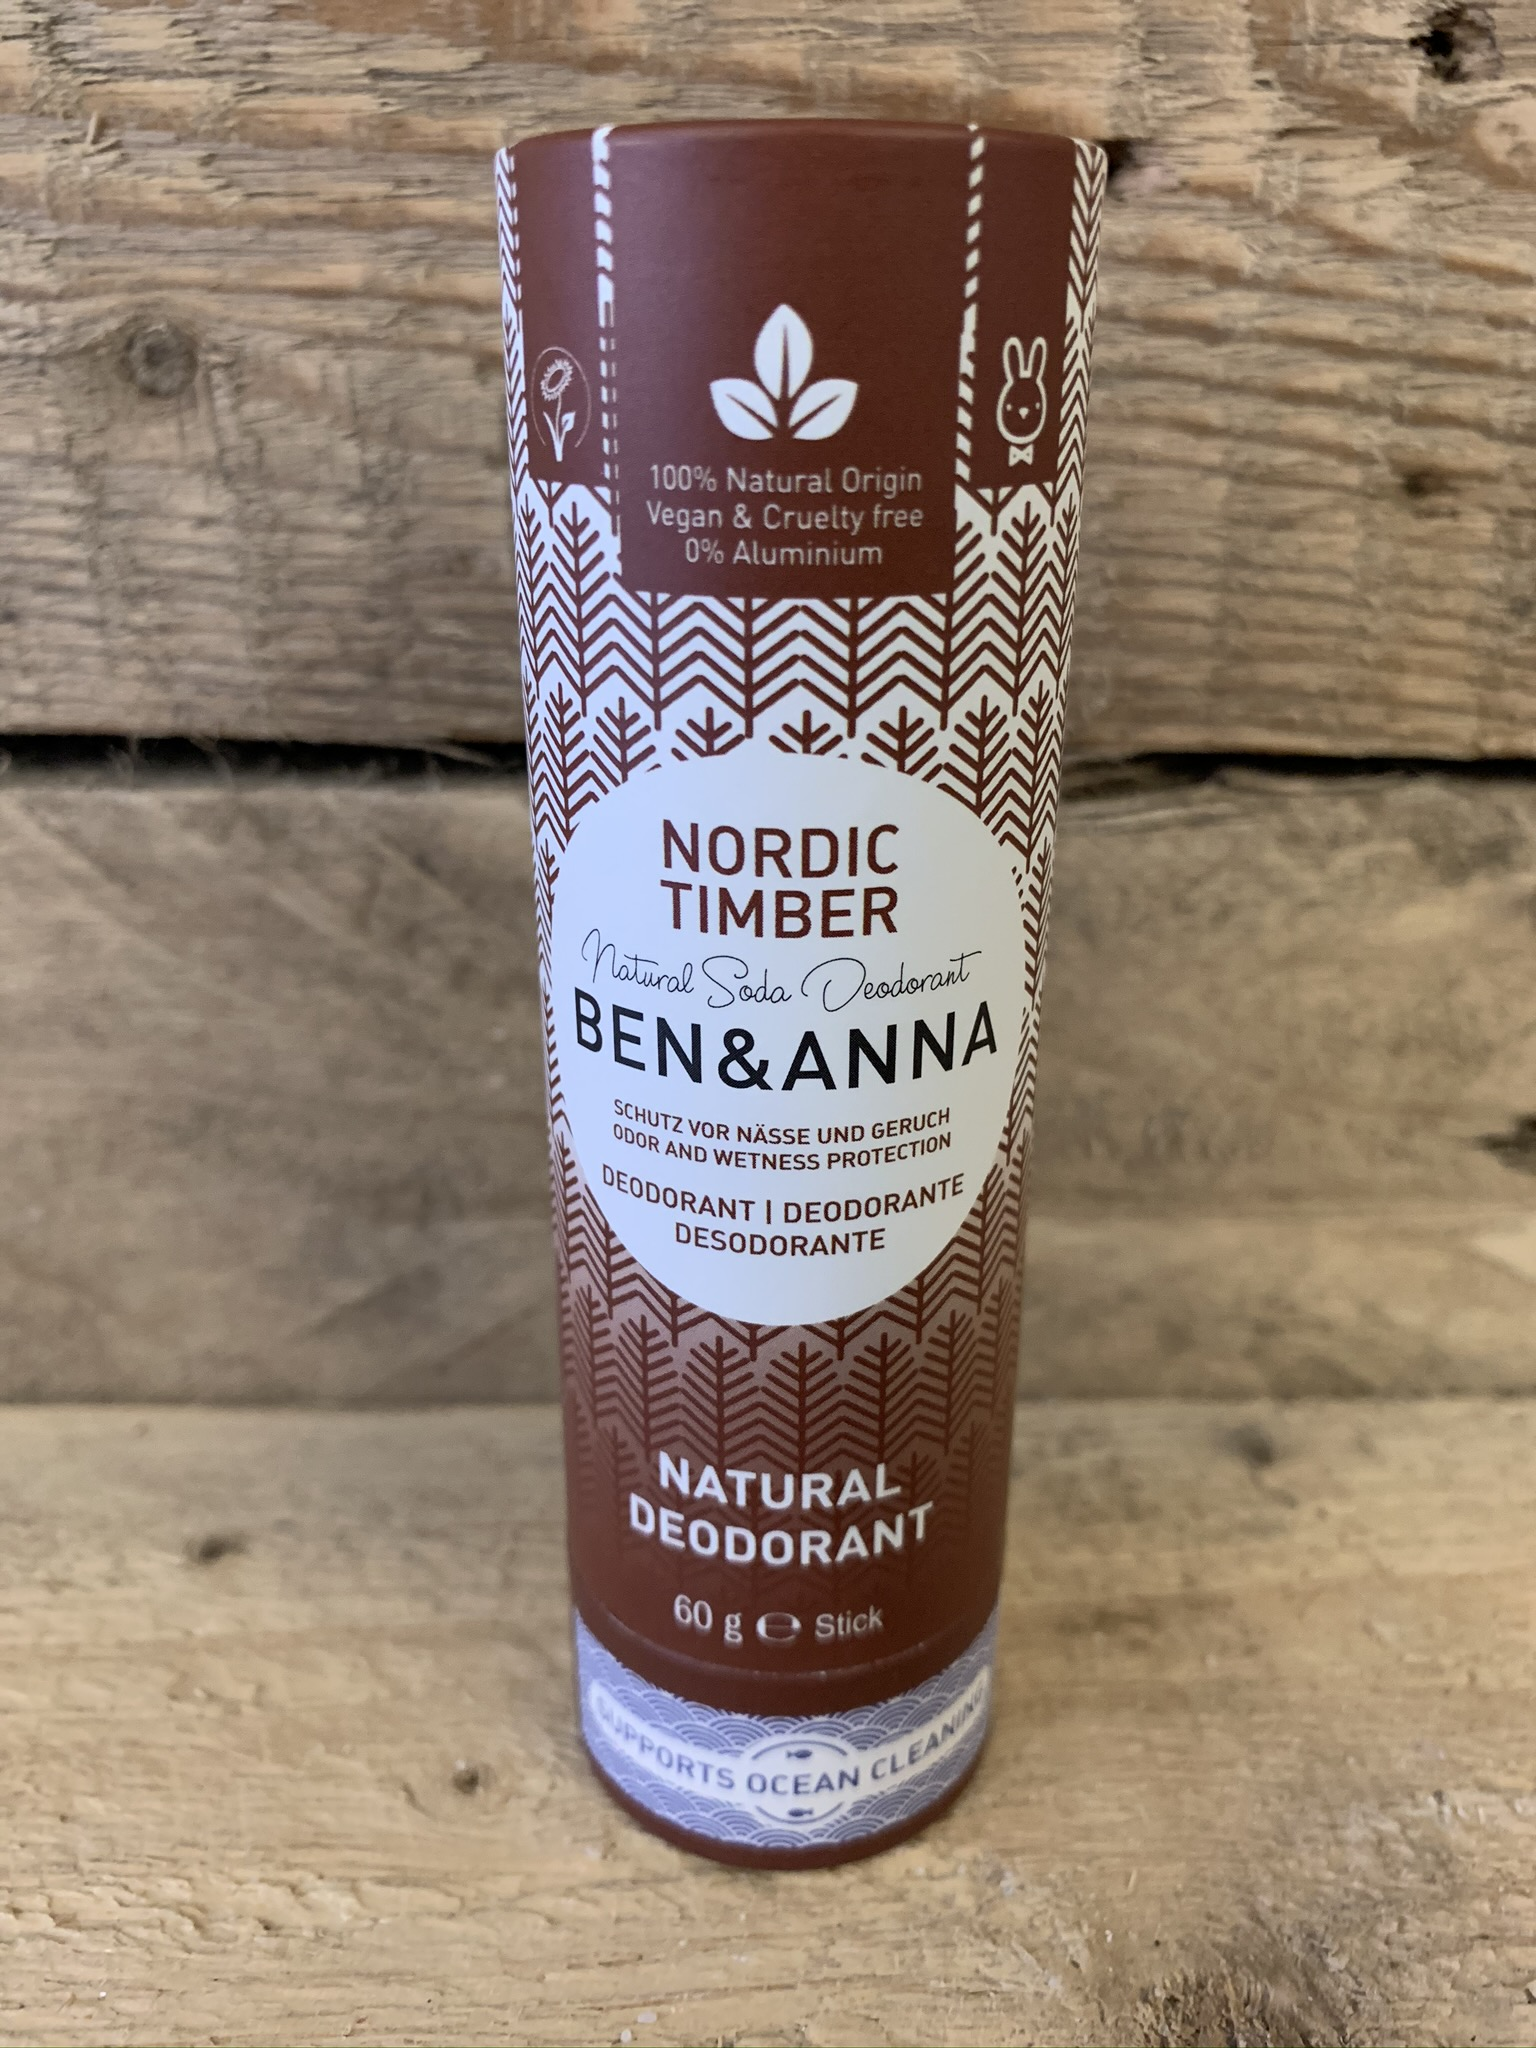 Ben & Anna Nordic Timber Natural Deodorant Stick